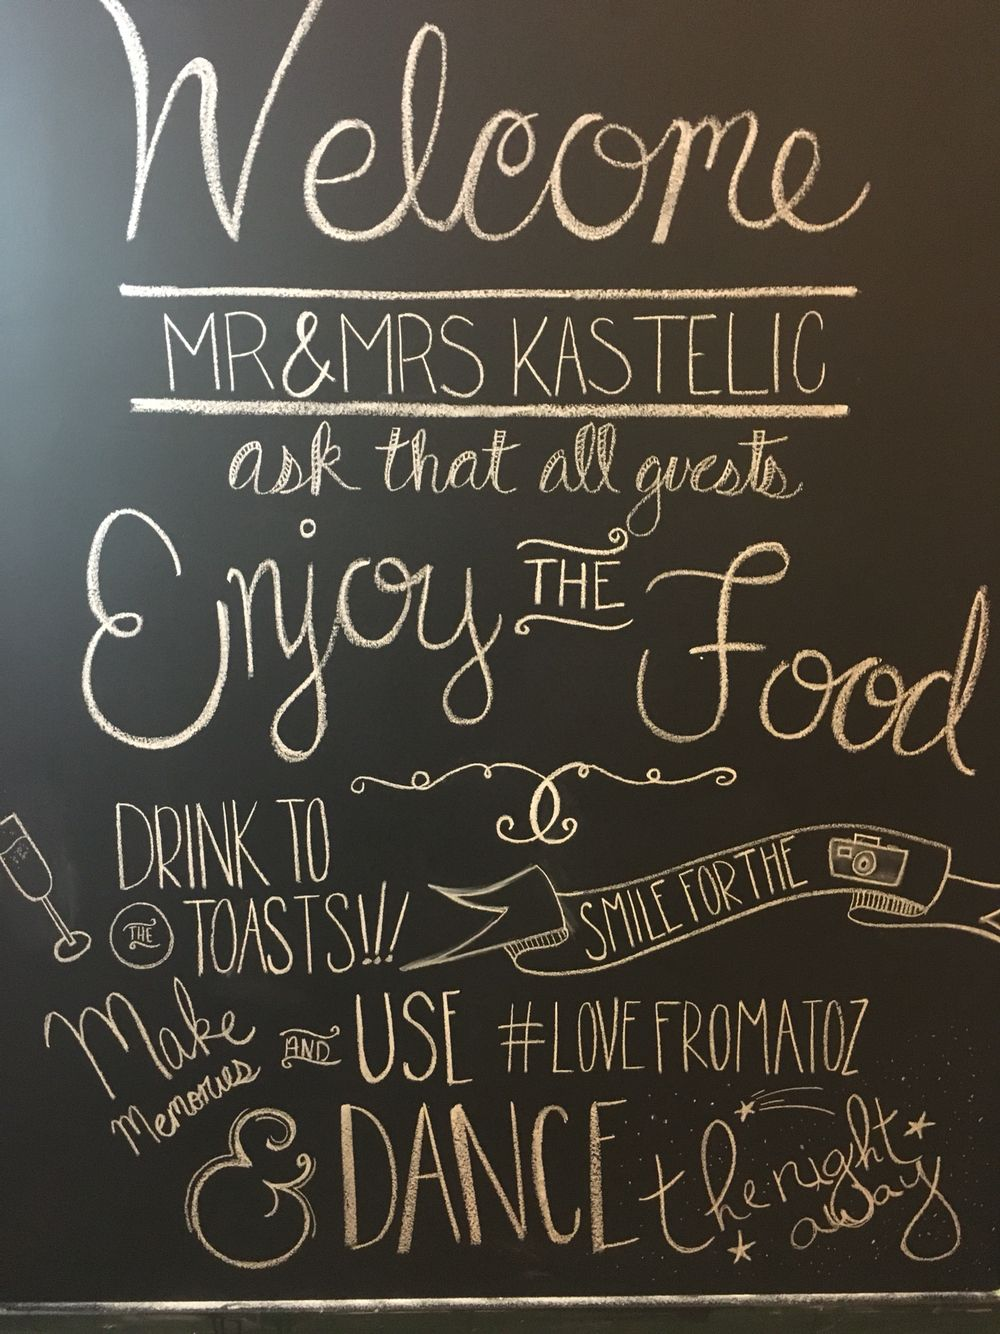 Fun with our chalkboards